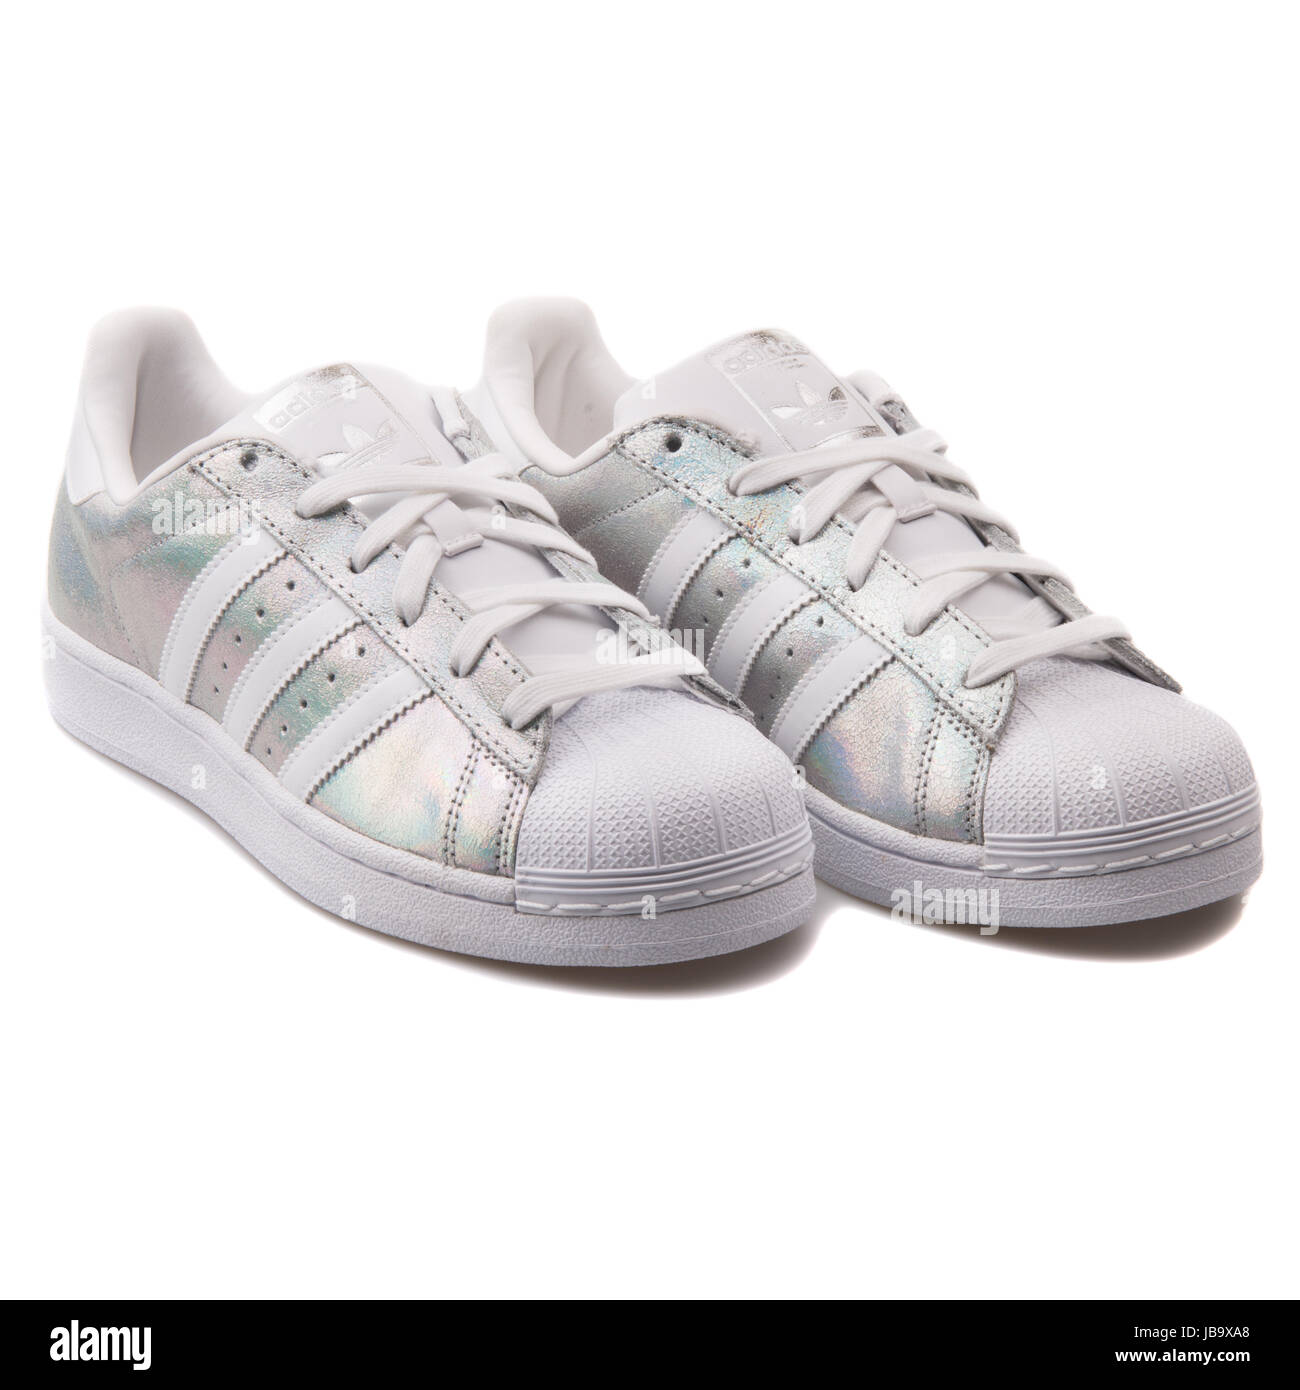 adidas superstar holographique - femme chaussures